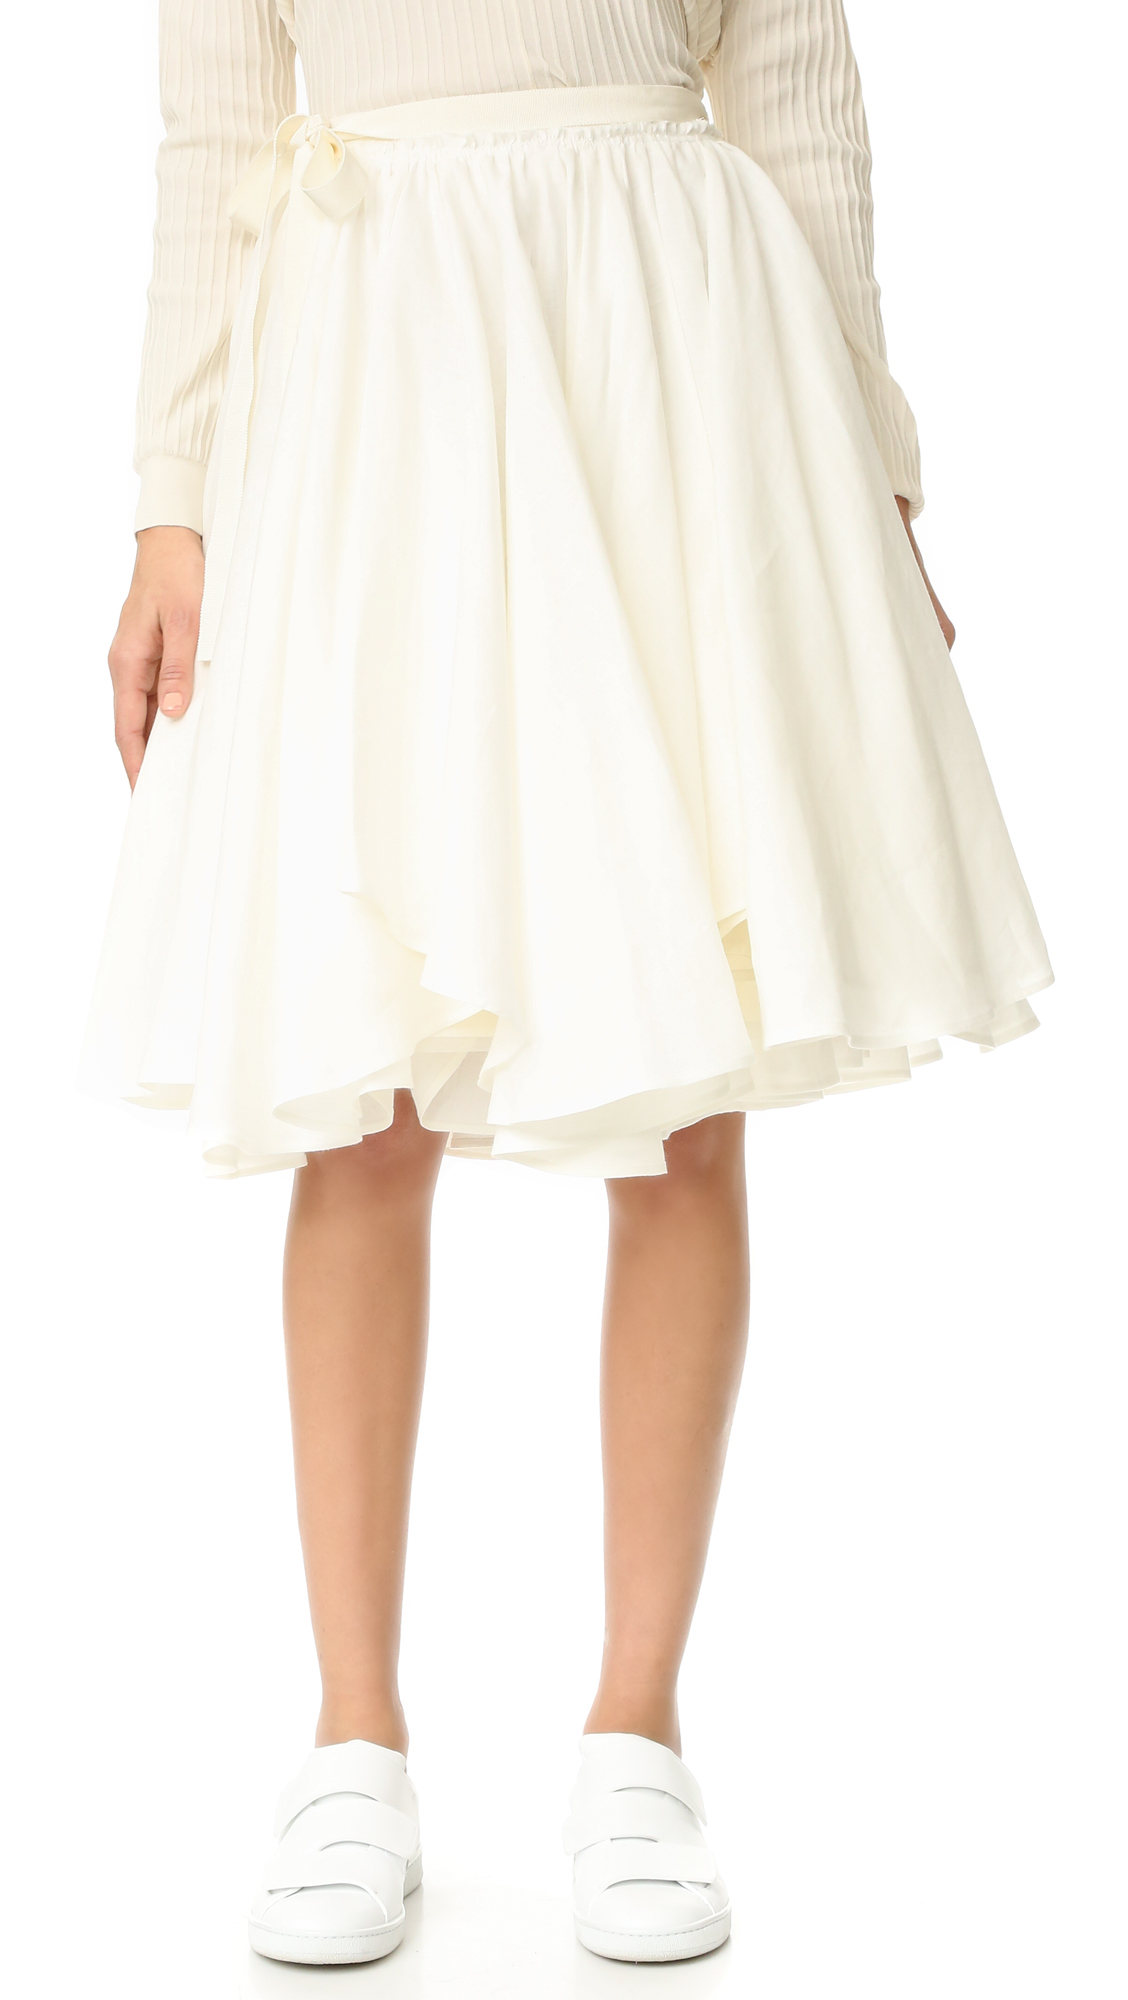 Acne Studios Petticoat Skirt - Ivory White at Shopbop